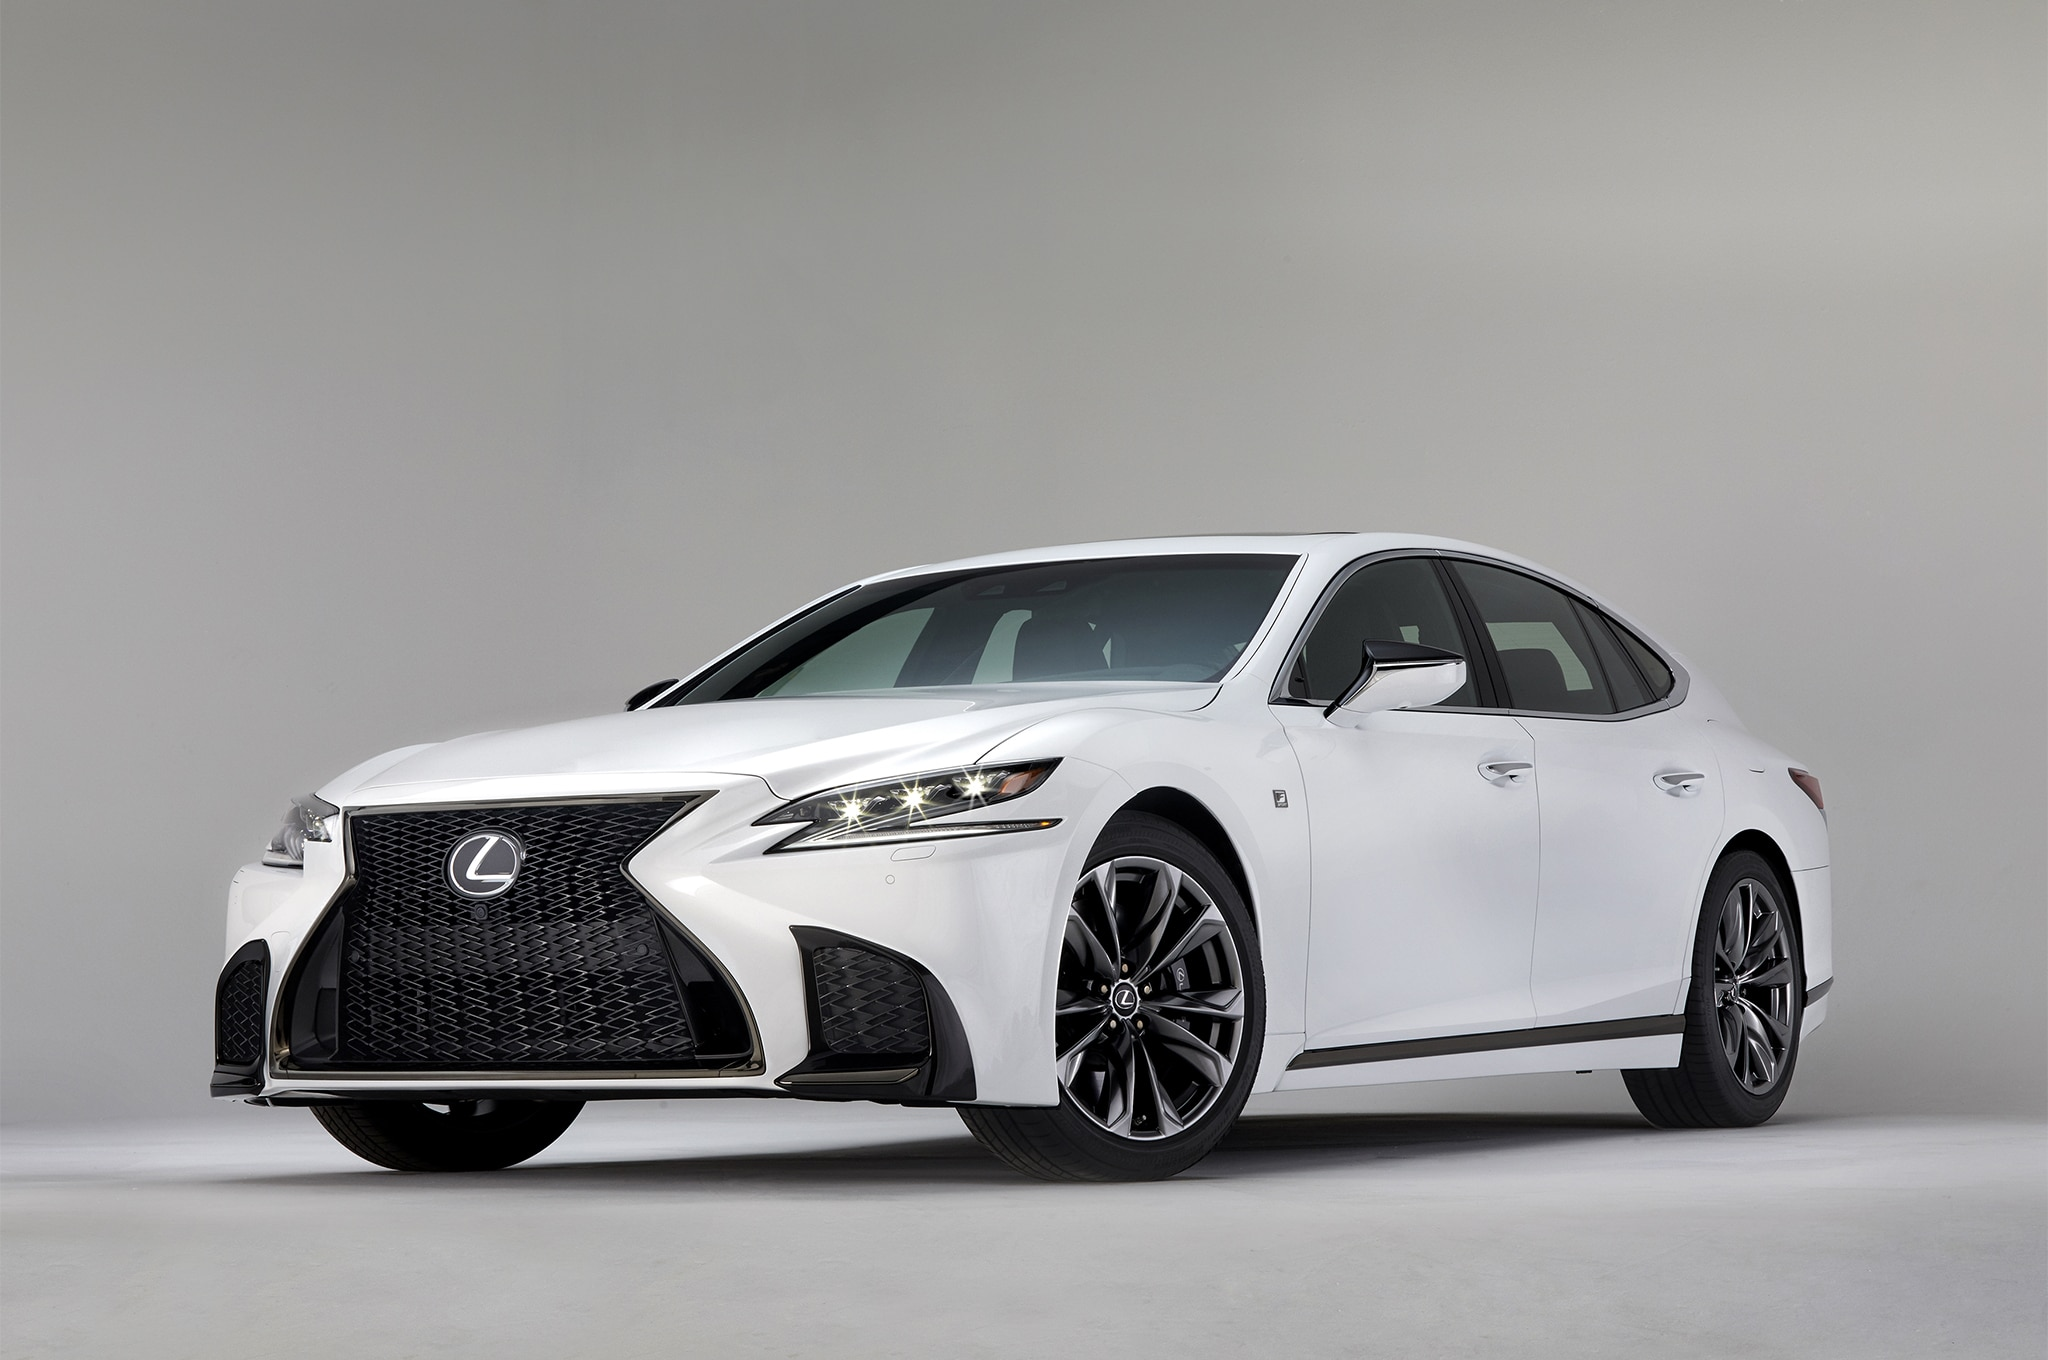 2018 Lexus LS 500 F Sport Front Three Quarter 01 2